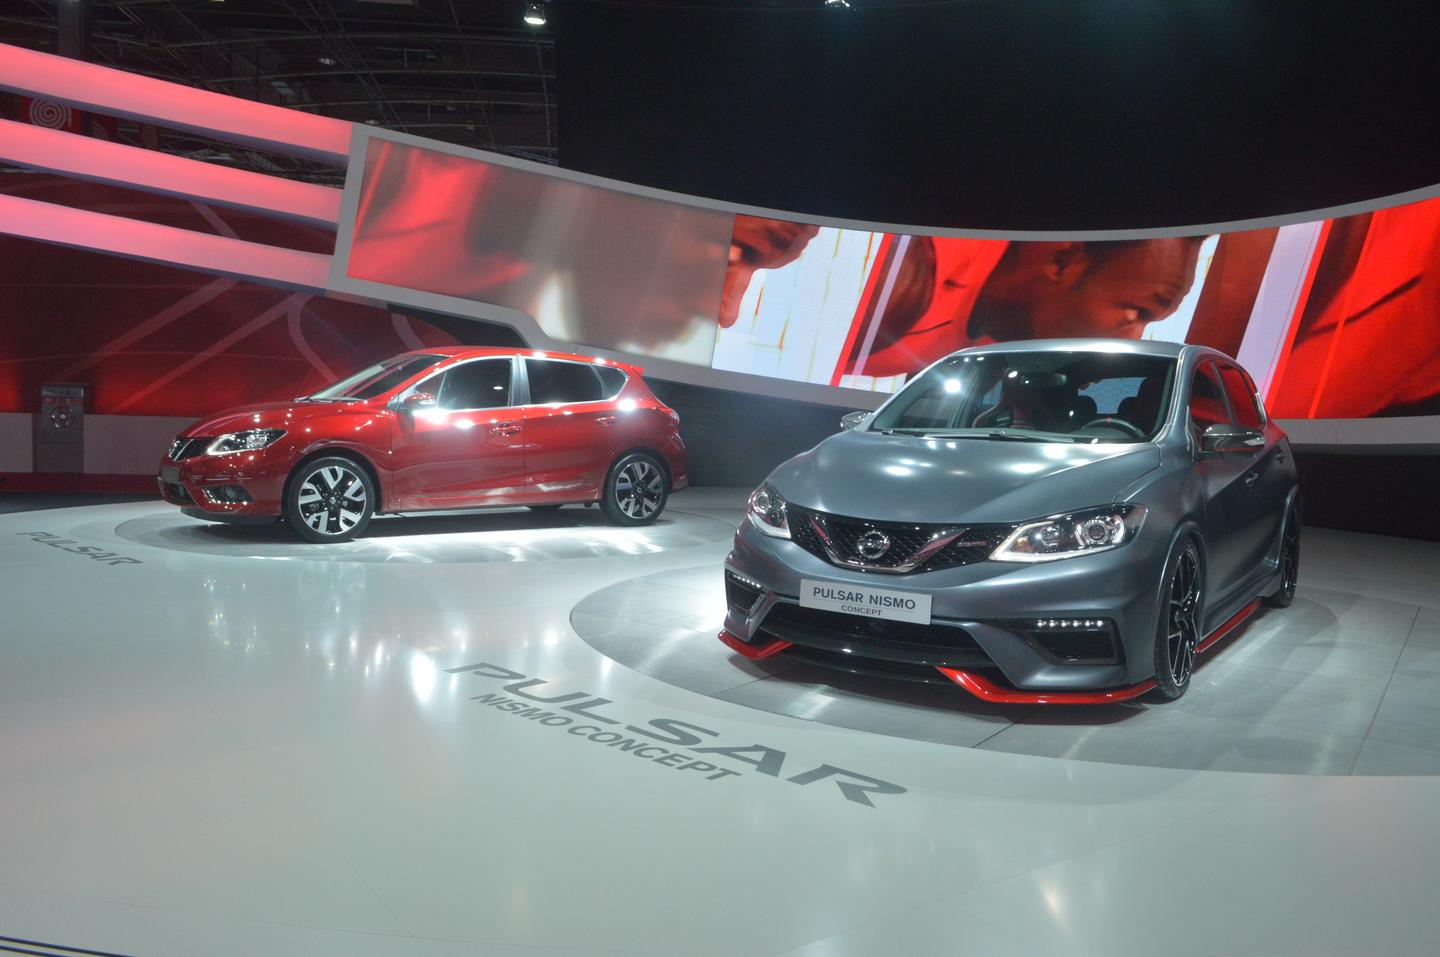 The Nissan Pulsar Nismo concept is a more aggressive Pulsar hatchback (Photo: C.C. Weiss/Gizmag)